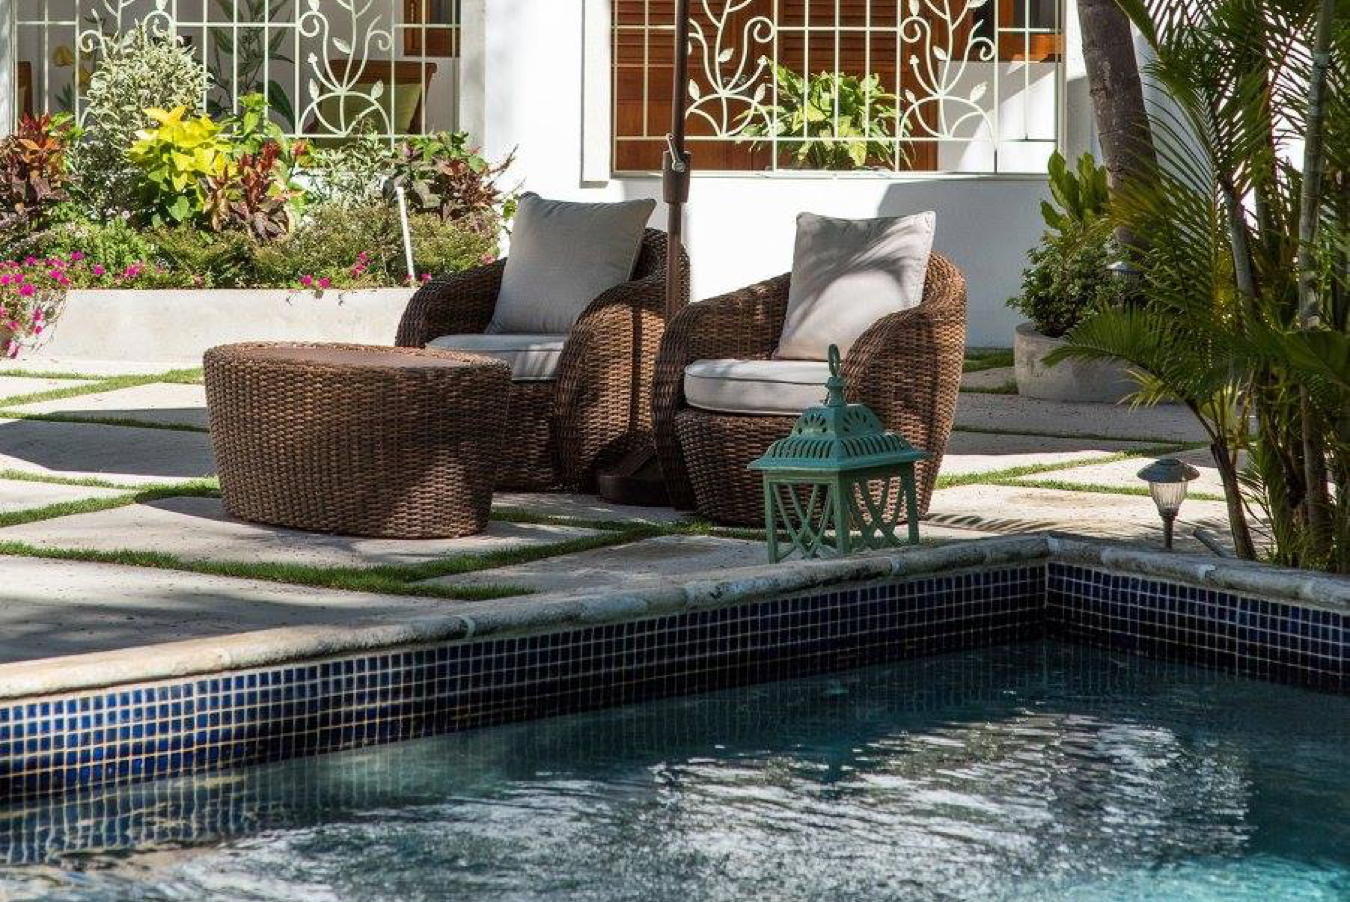 shot of swimming pool with chairs and brolley